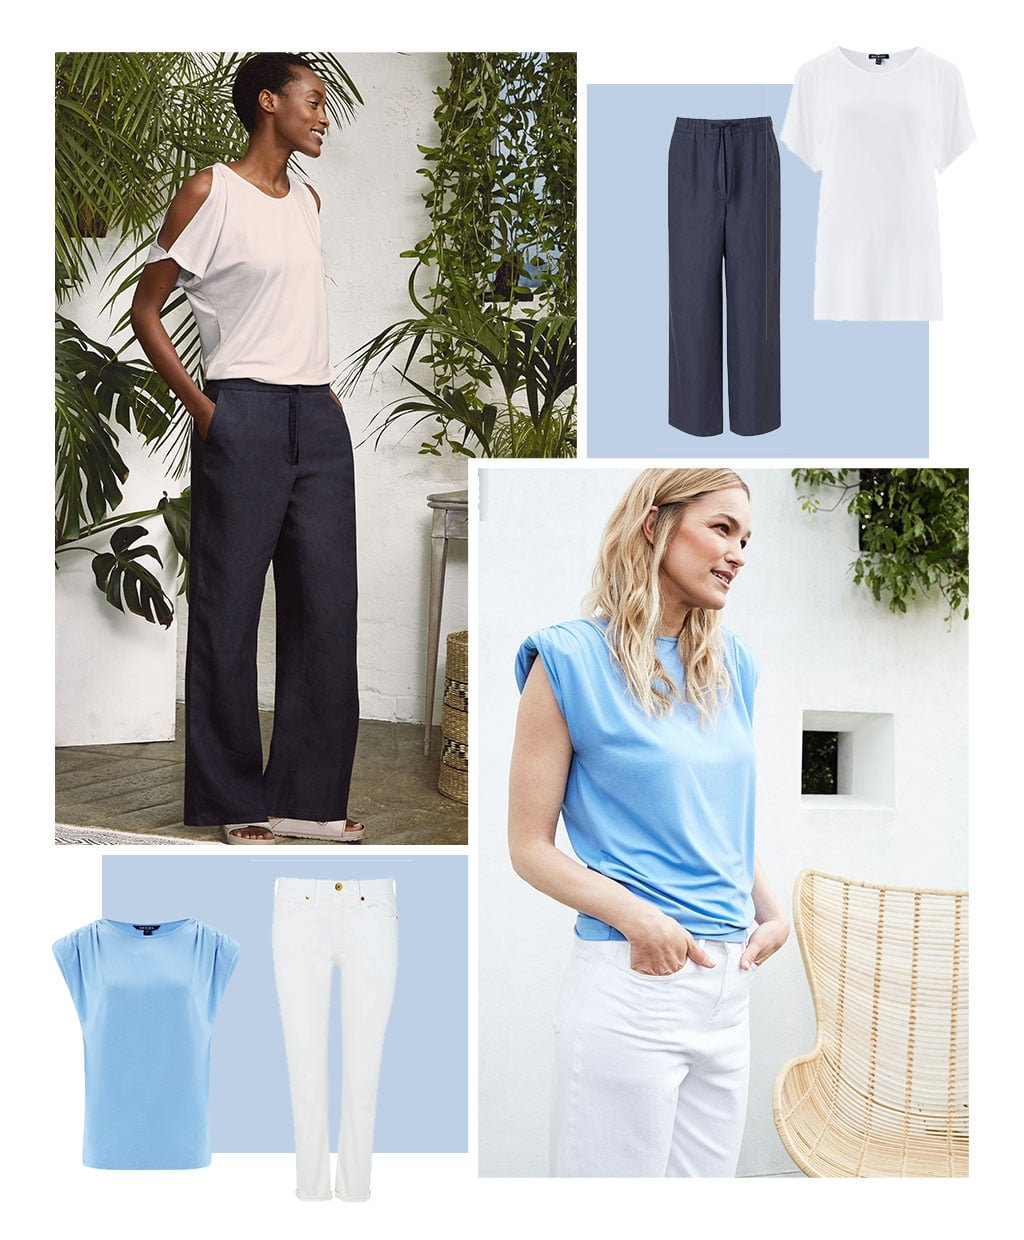 Shop Ros Top with LENZING™ ECOVERO™ Pure White, Lucy Hemp Trouser Navy, Alice Top with LENZING™ ECOVERO™ Sky Blue, The Organic Boyfriend Jean Off White and more